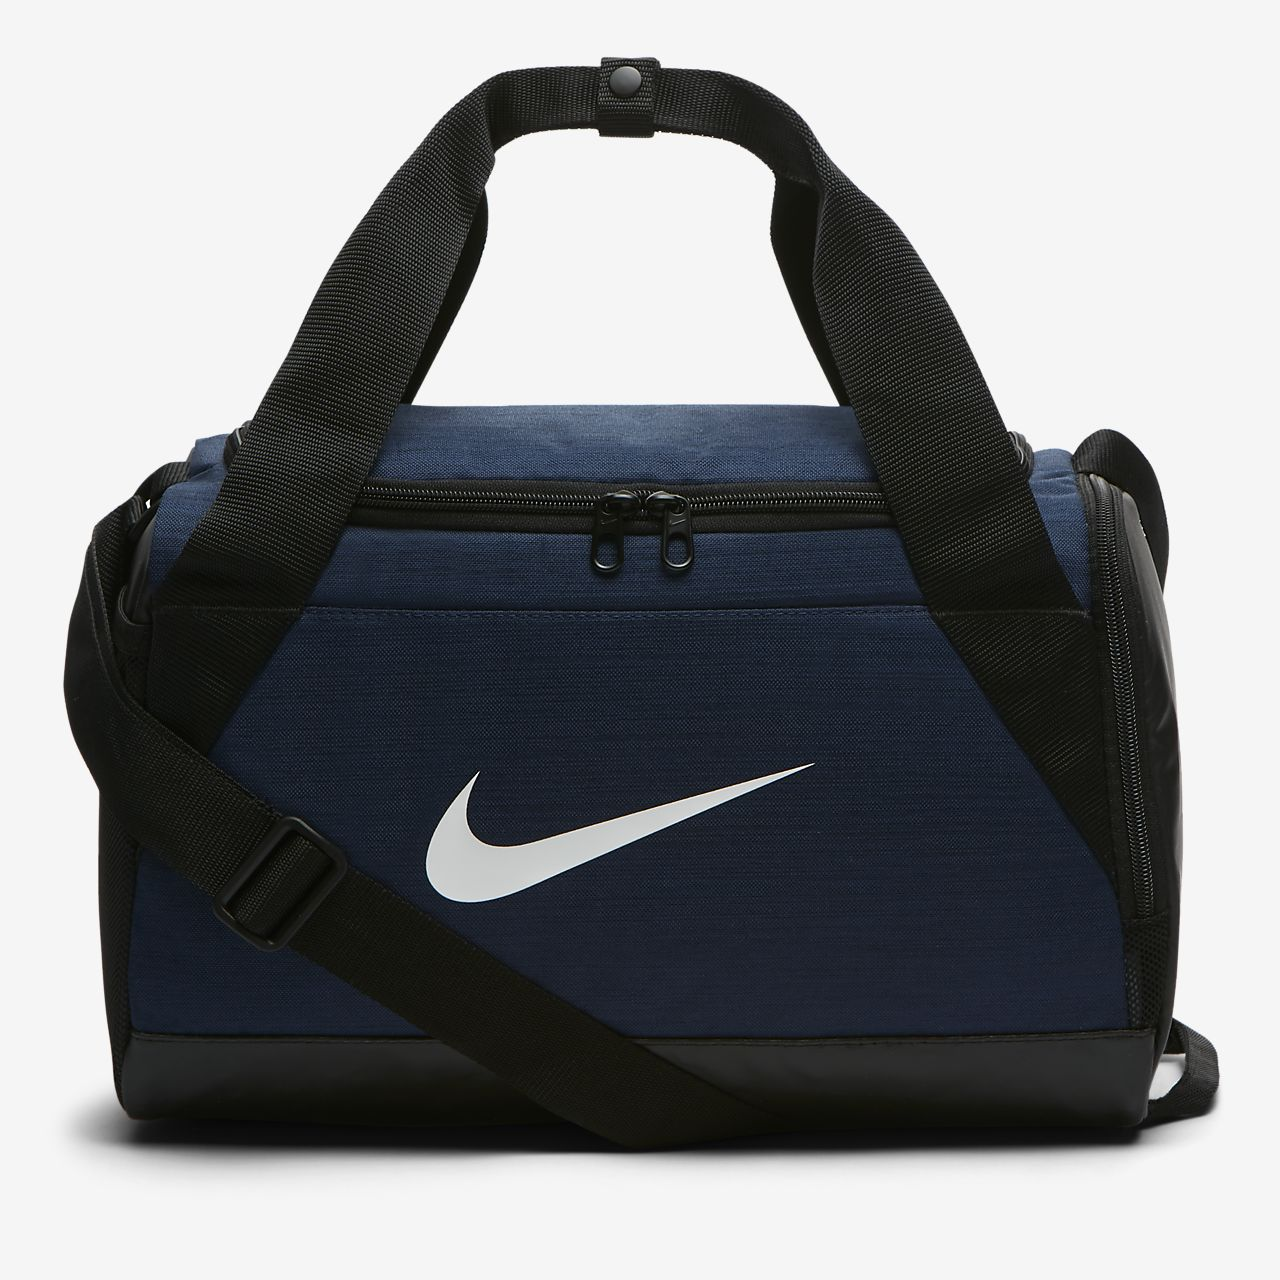 e7abe0a79c Nike Brasilia (Extra Small) Training Duffel Bag. Nike.com GB